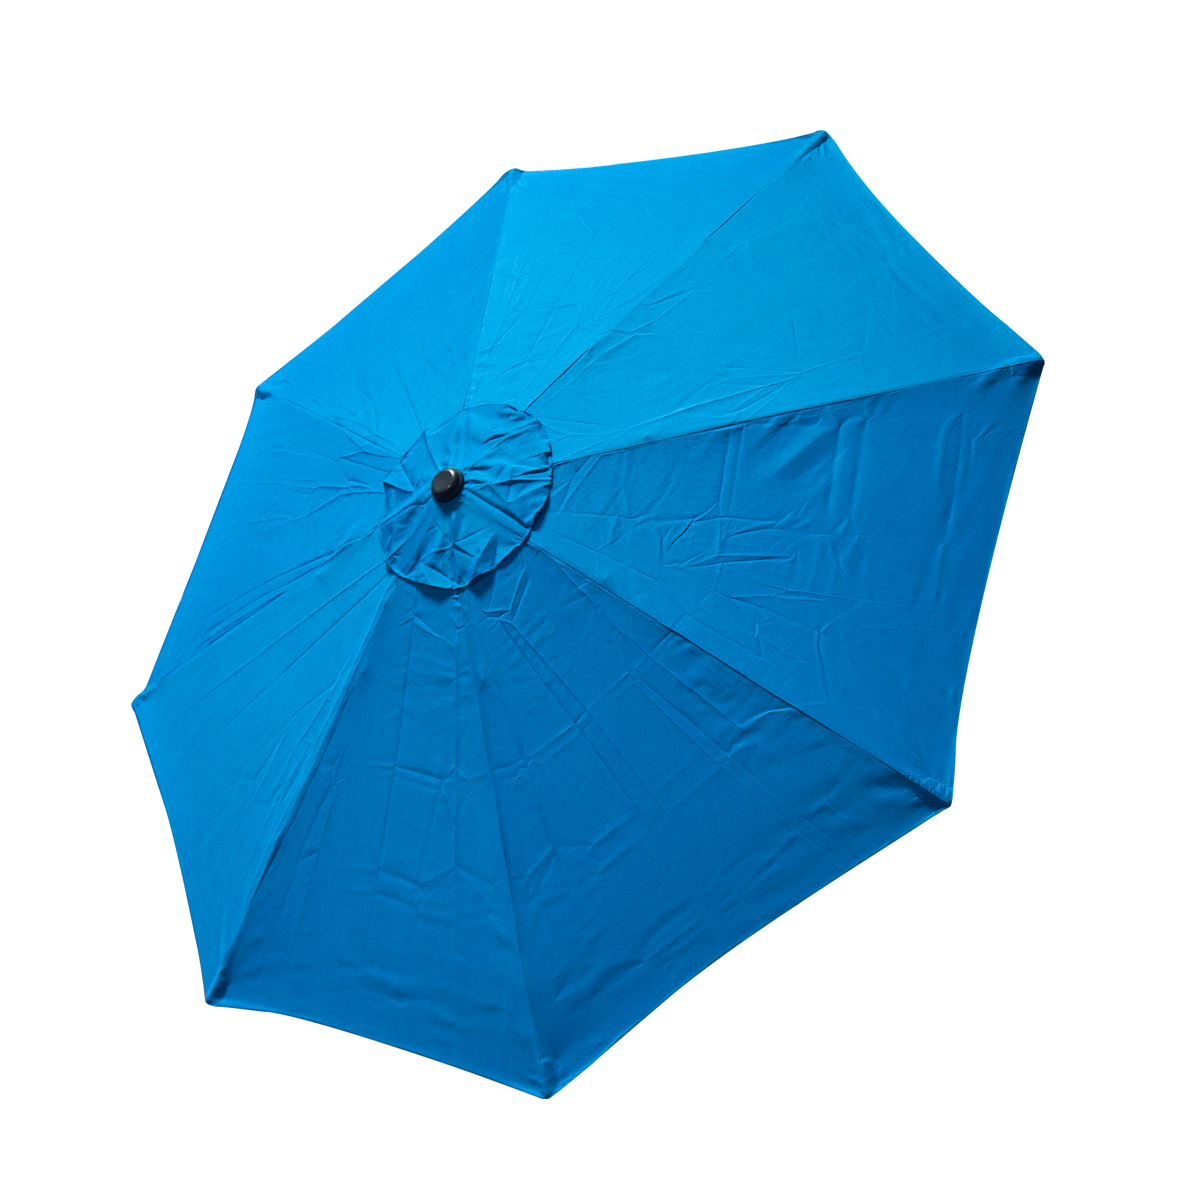 Patio Umbrella Replacement Canopy: Replacement Cover Canopy 9 FT 8 Ribs Umbrella Blue Top